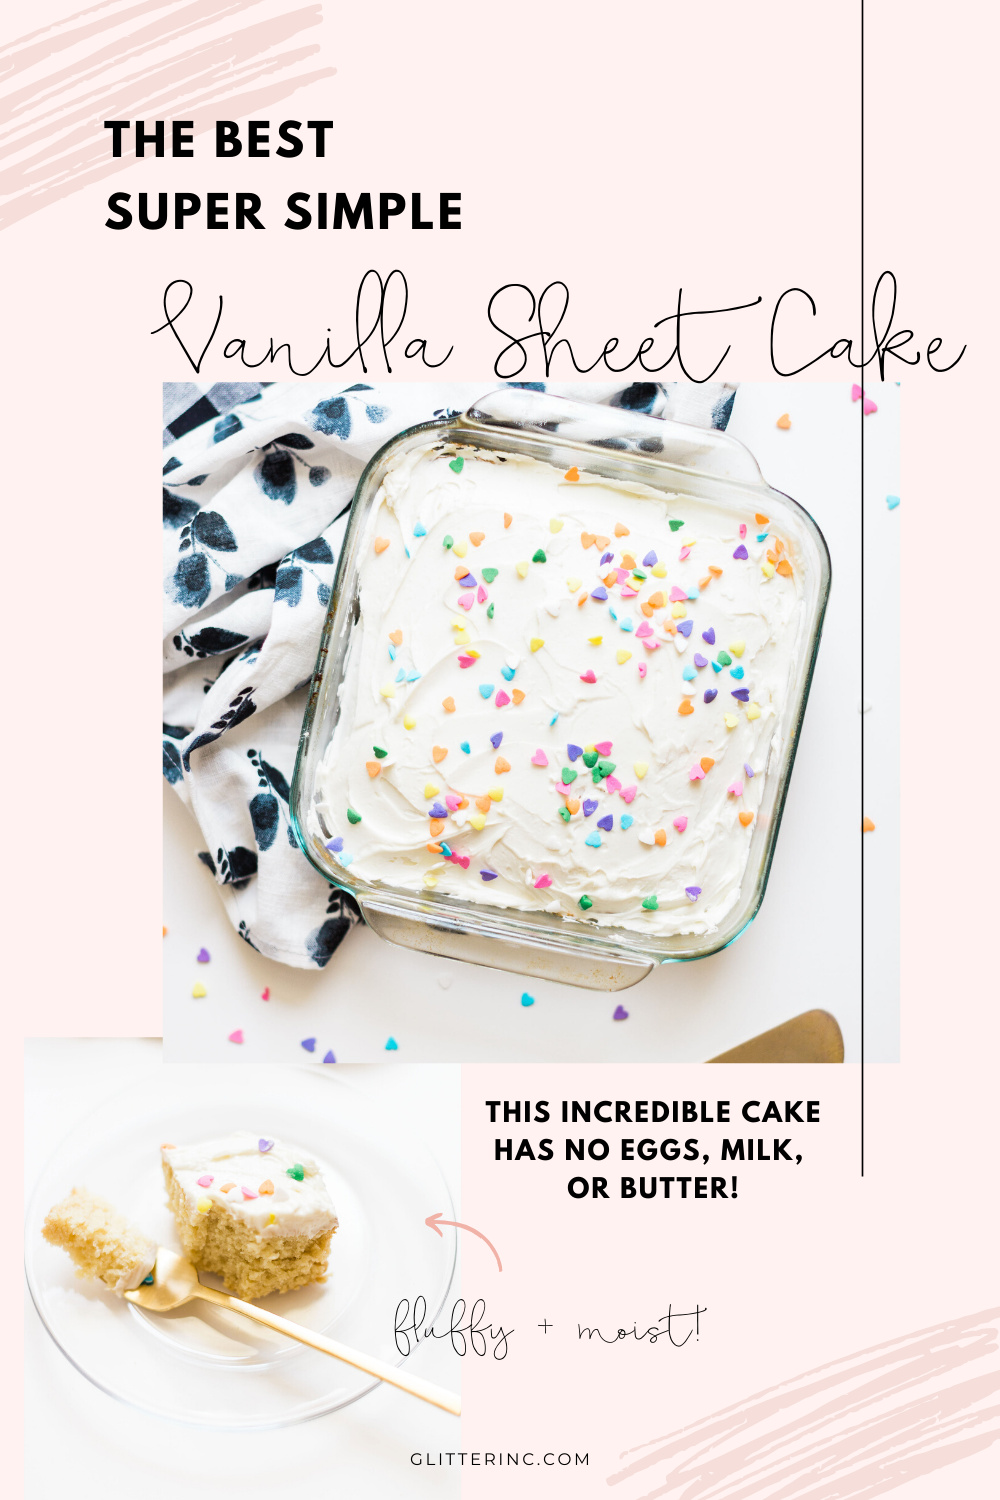 This simple homemade vanilla sheet cake is moist, fluffy, yummy, has NO eggs, milk, or butter, can be made all in one baking pan, comes out perfect every single time, and is way better than boxed cake mix. Click through for the recipe. | glitterinc.com | @glitterinc